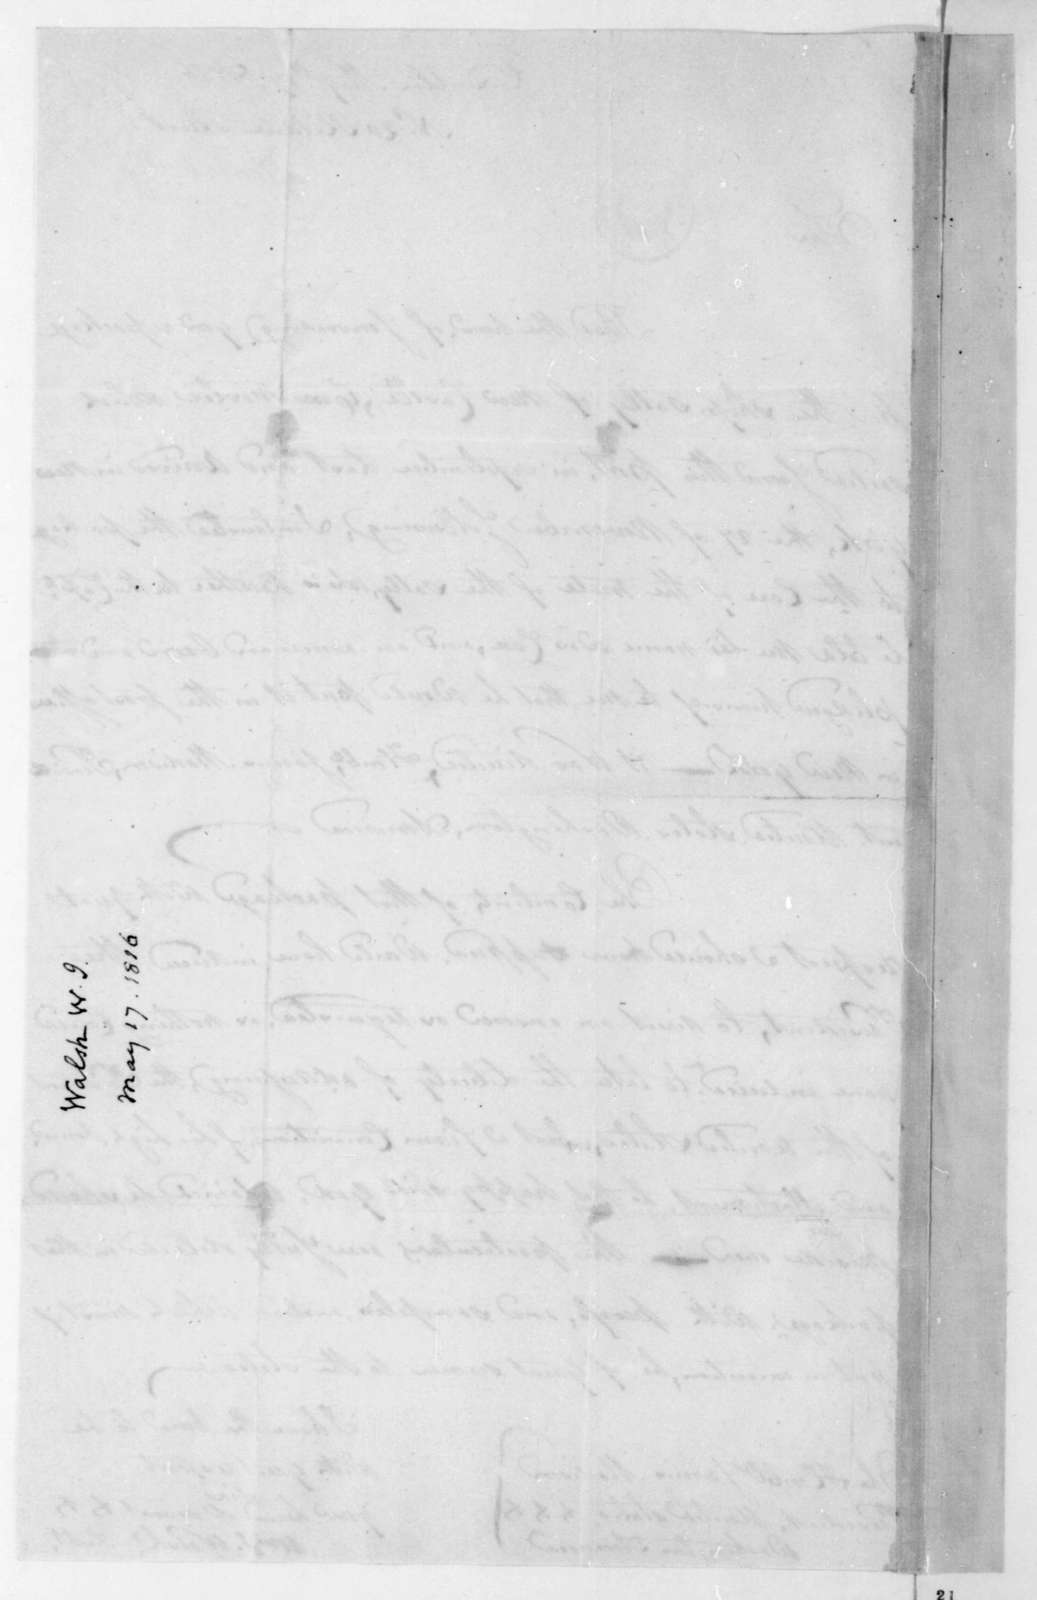 William J. Walsh to James Madison, May 17, 1816.